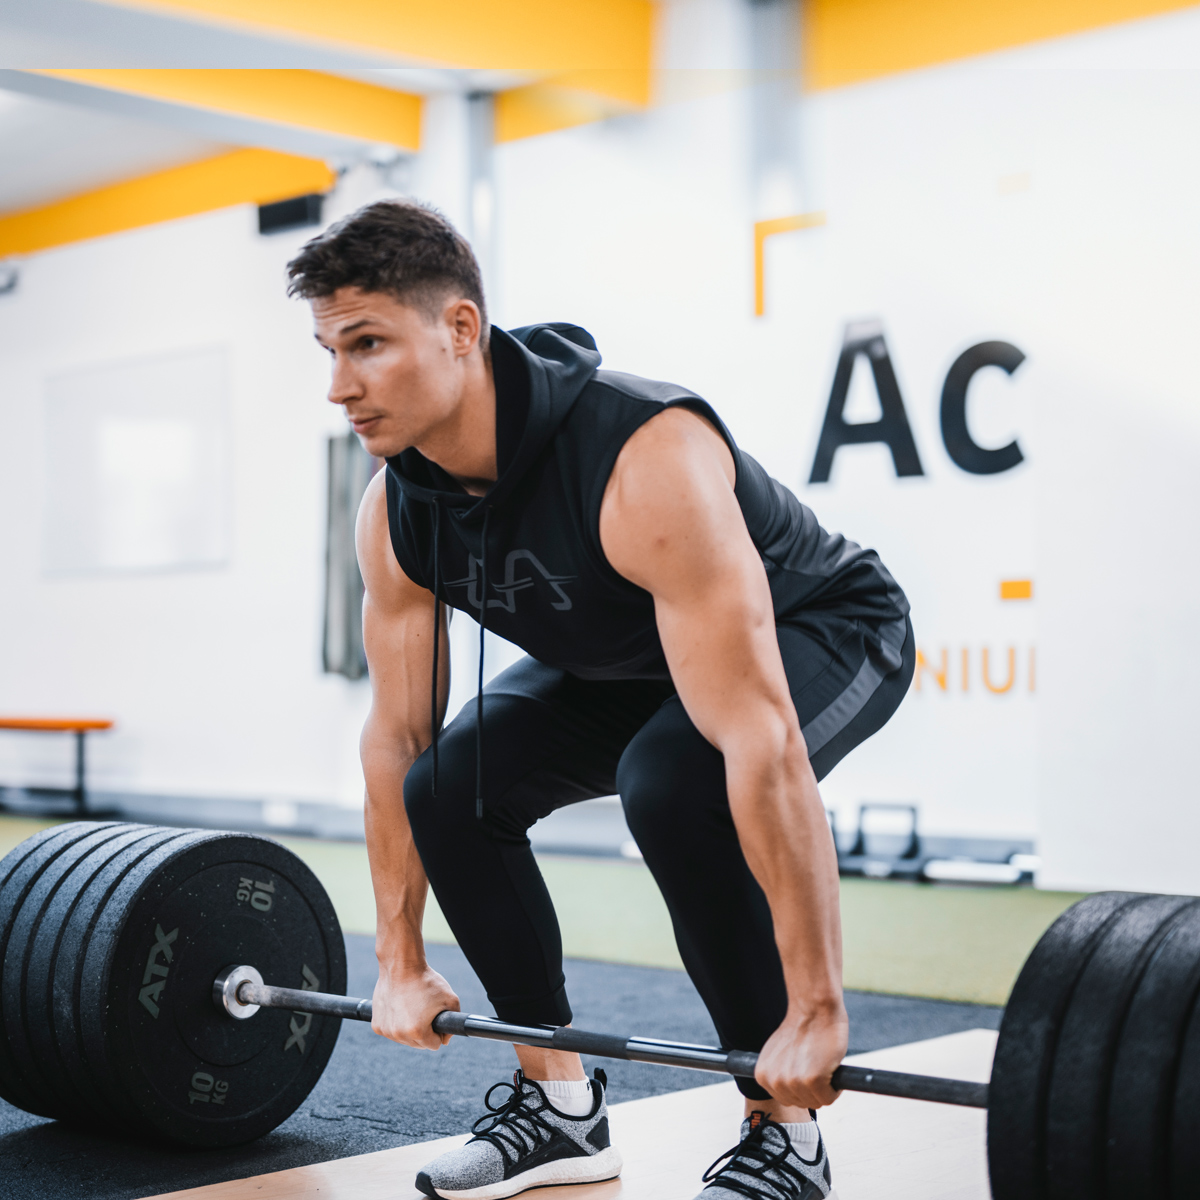 Life for fitness - men's collection | Gym Aesthetics